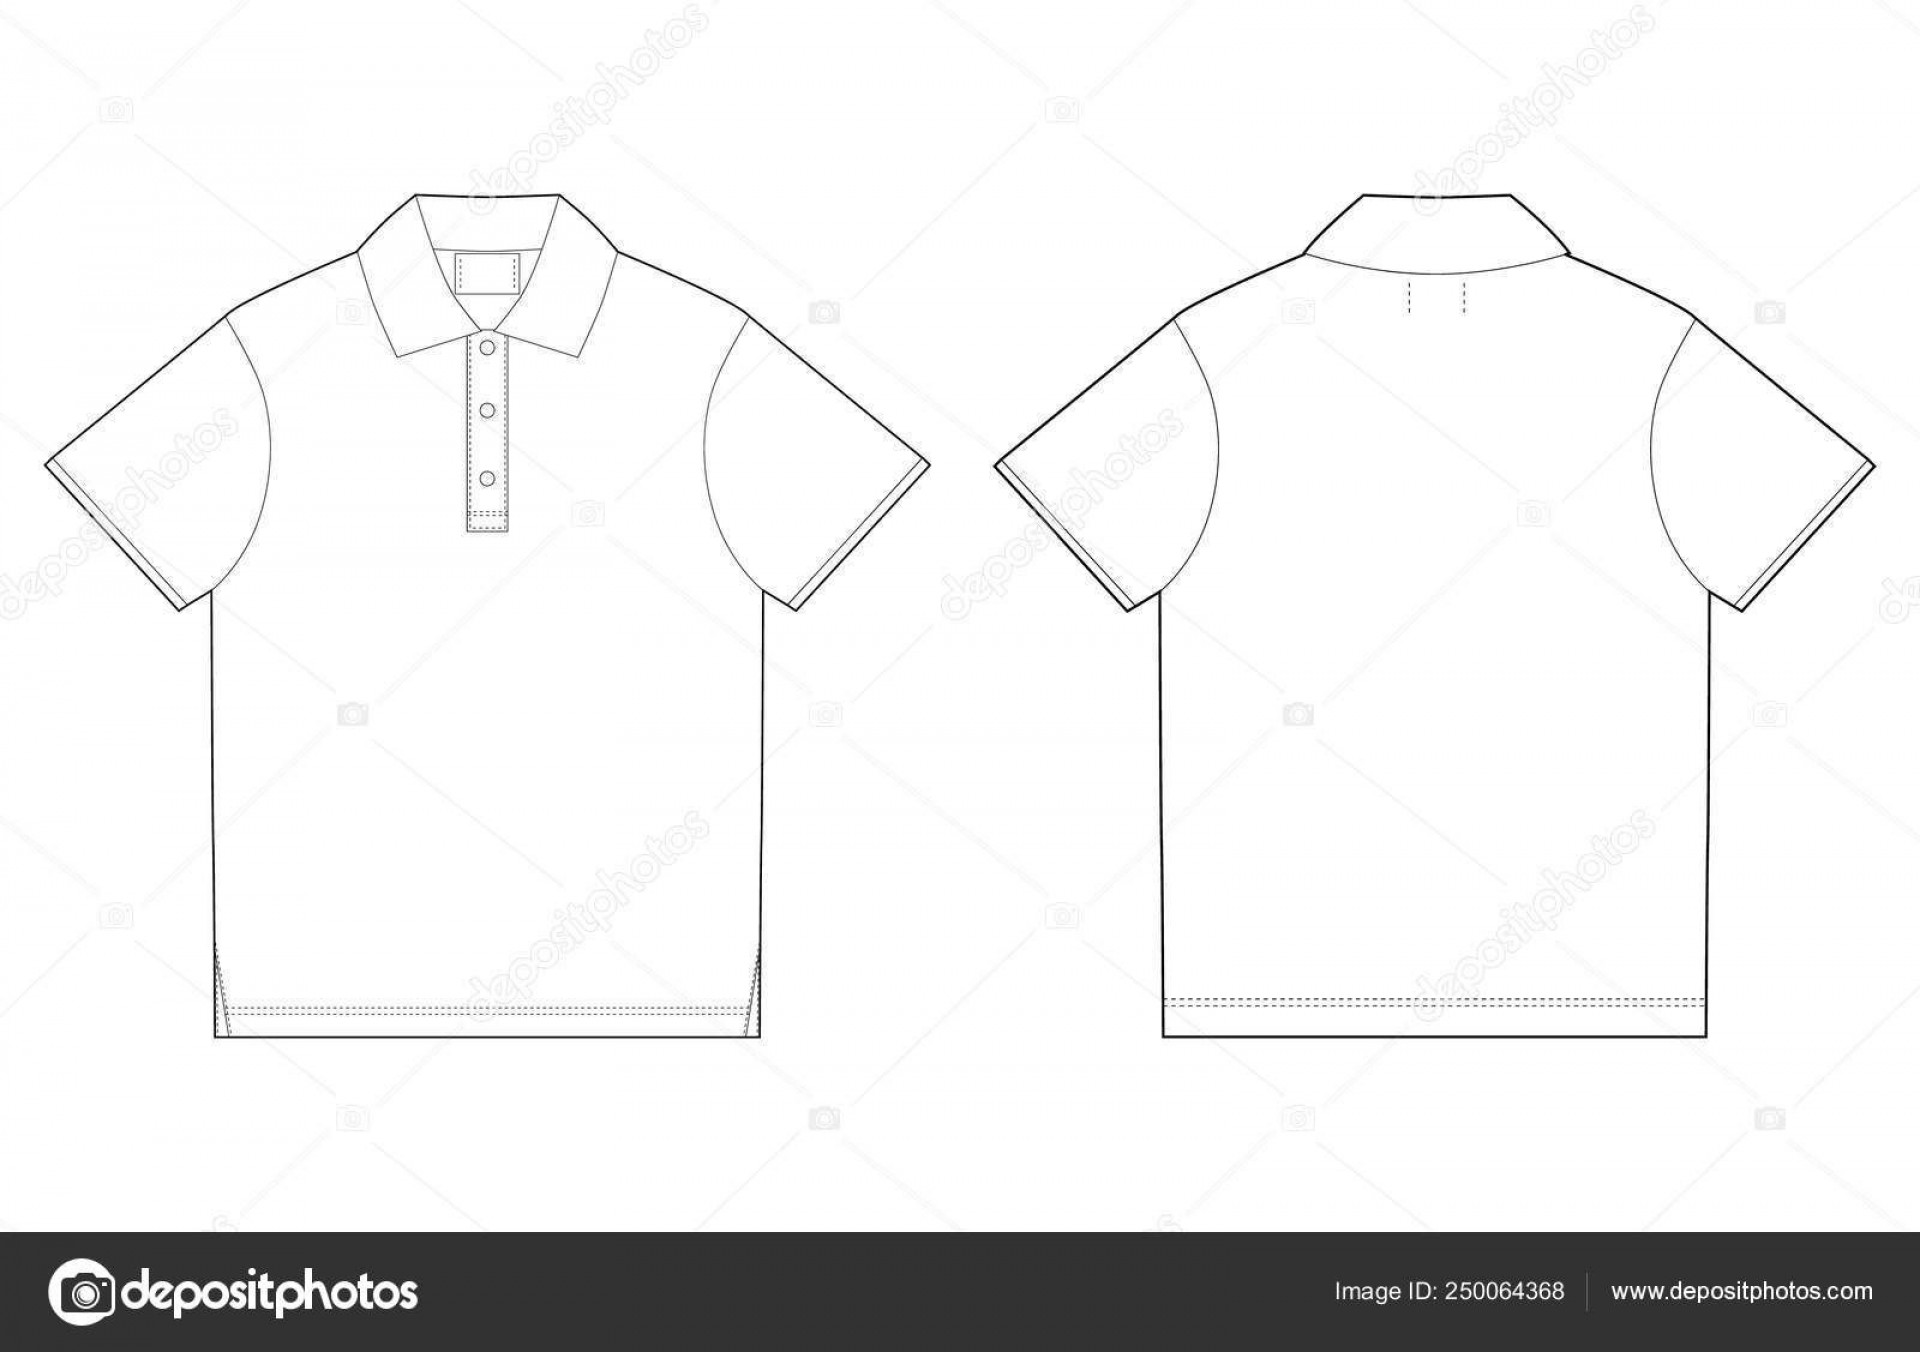 006 Awful Tee Shirt Design Template Highest Clarity  Templates T Illustrator Free Download Polo Psd1920